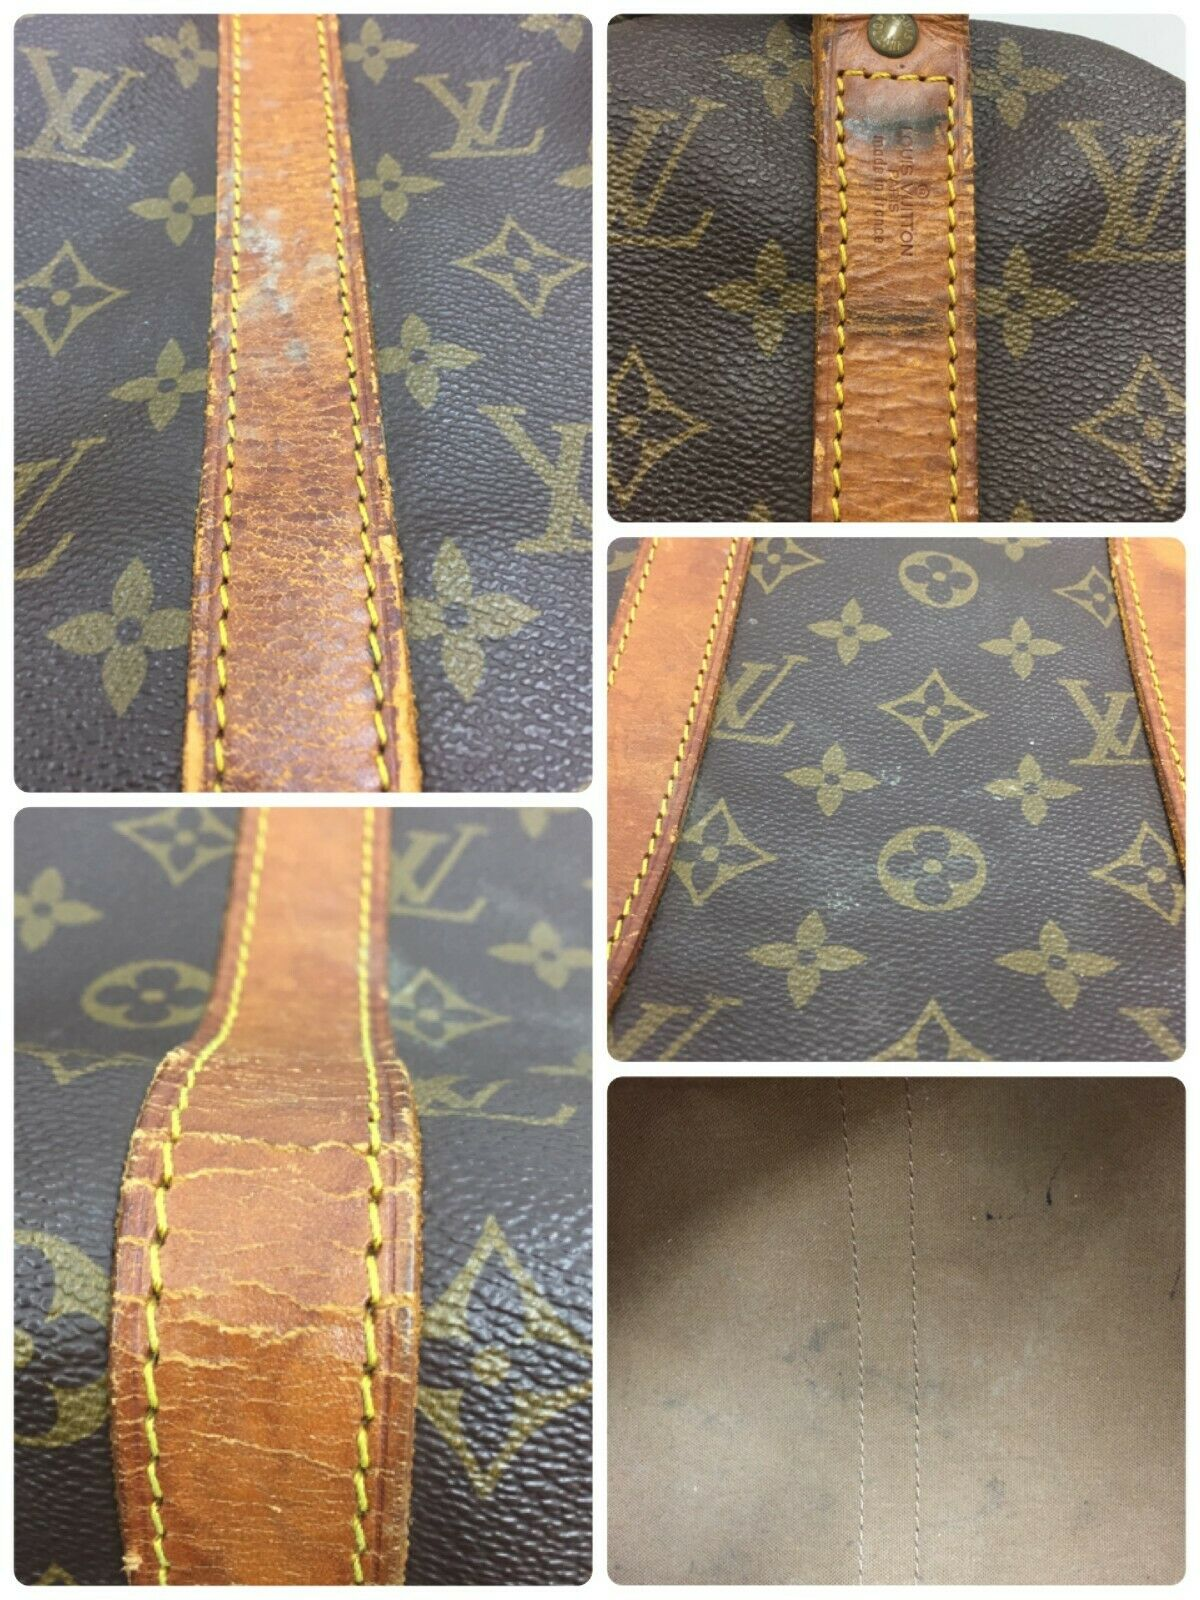 Louis Vuitton Keepall Bandouliere 45 Monogram Travel Bag 11438